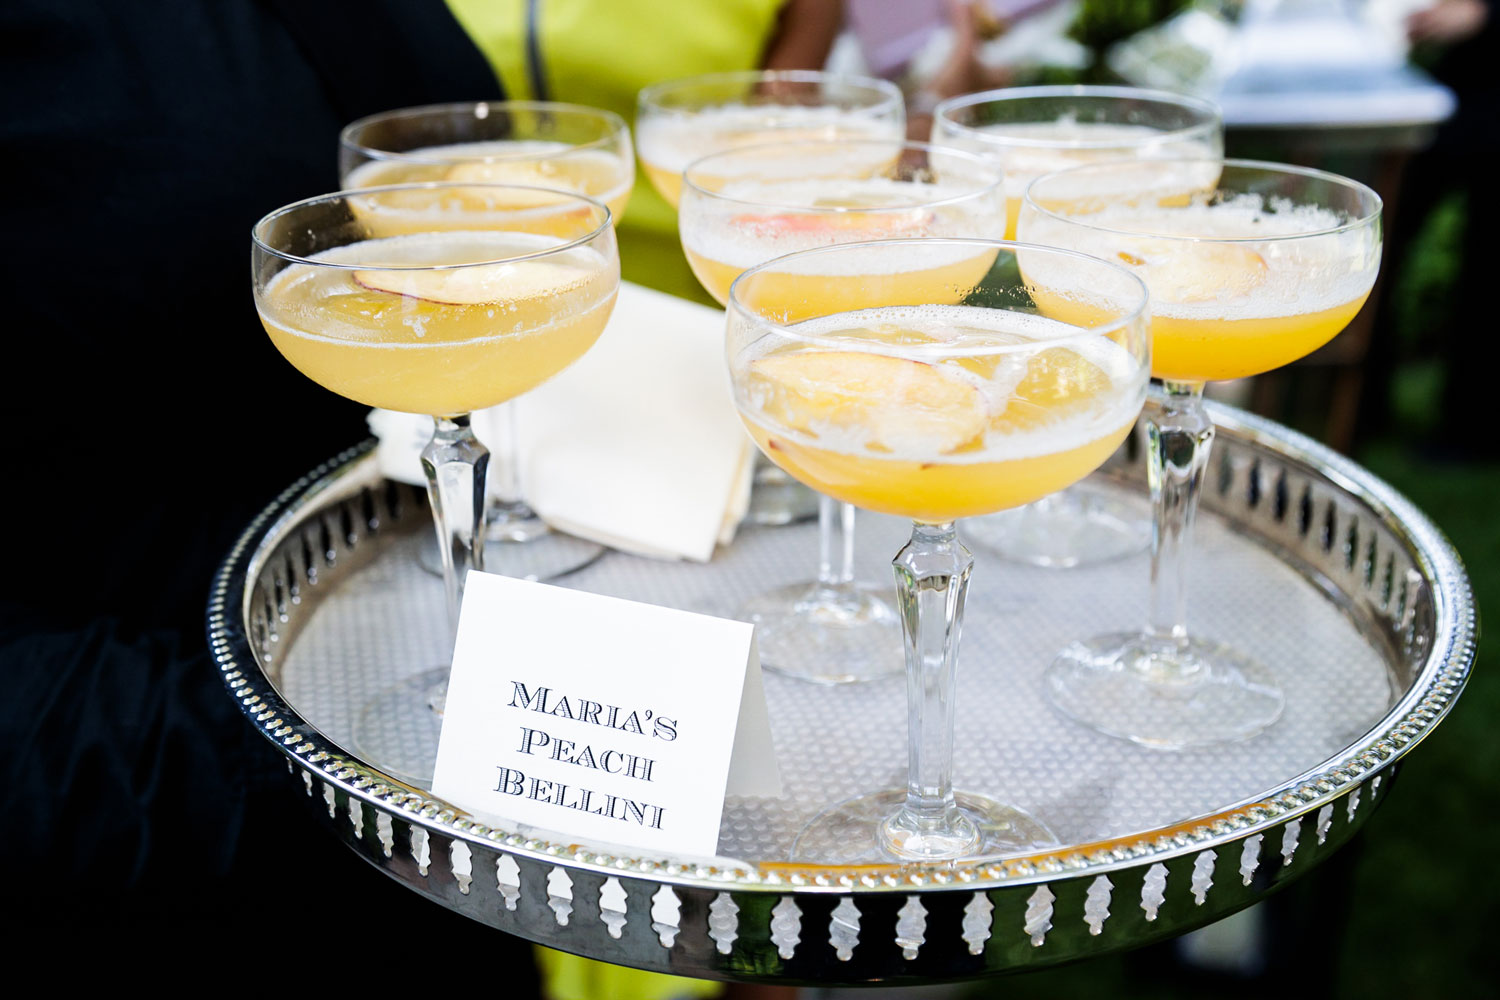 Signature drinks on tray at wedding reception wedding detail shot photography